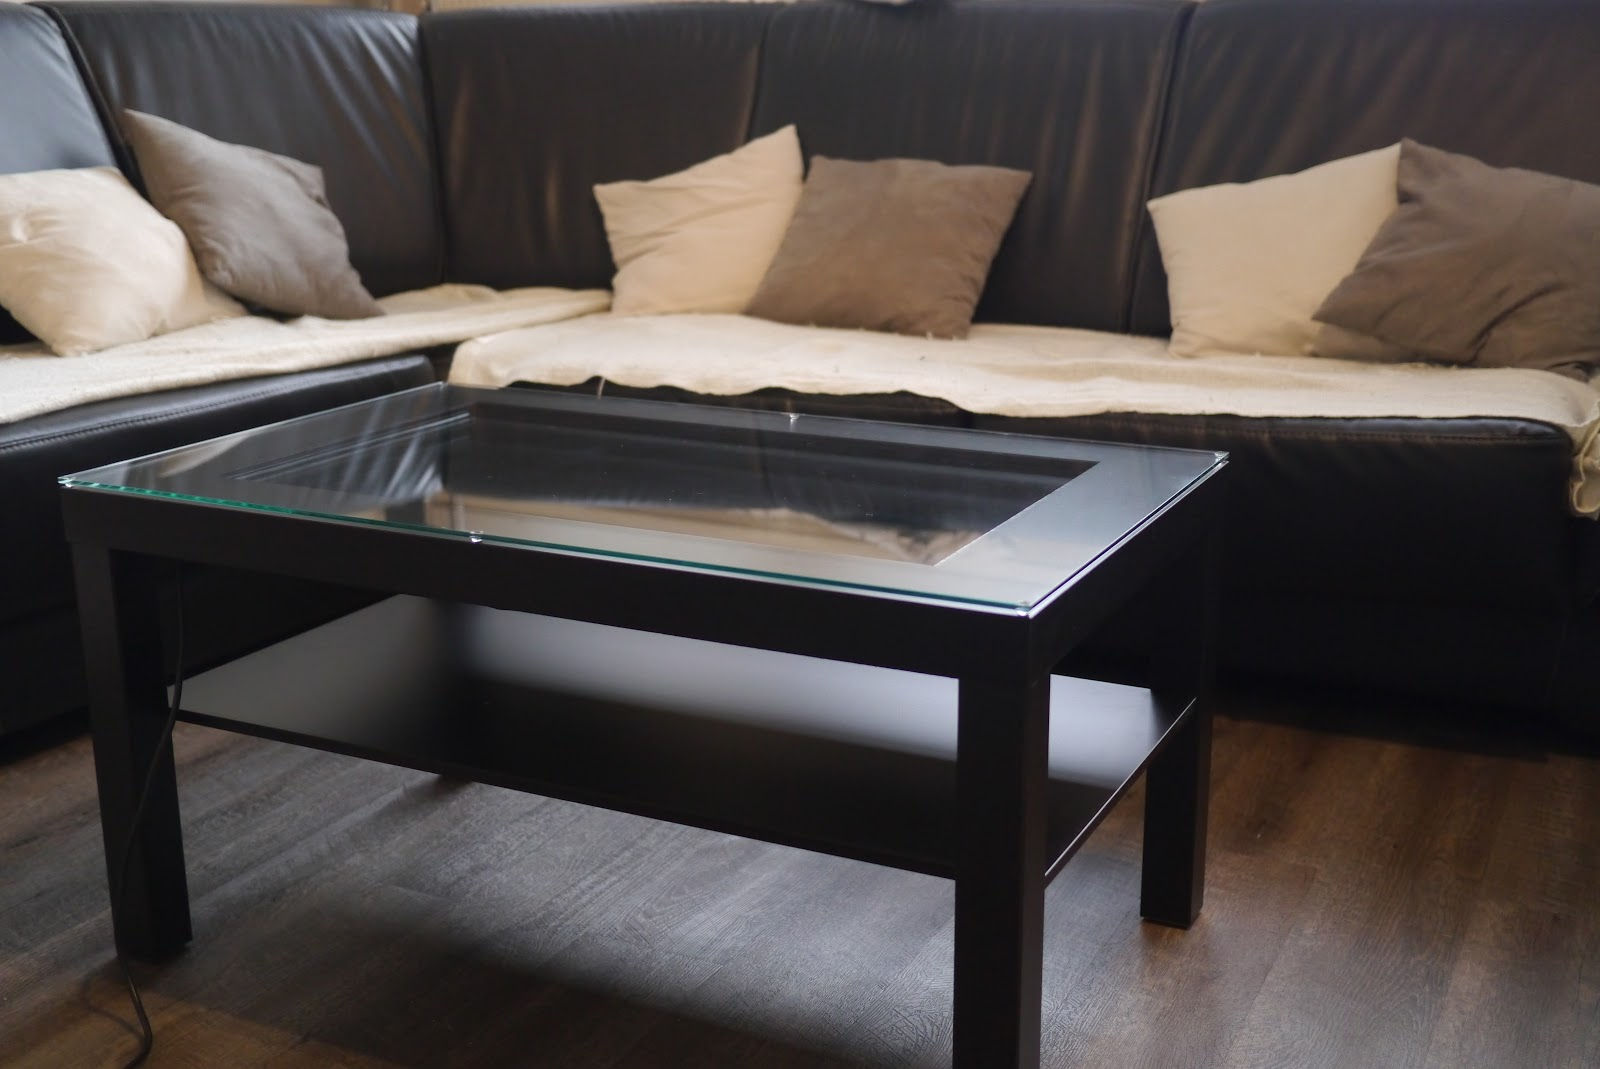 Le diy de droofy table basse tactile v2 pqlab for Plateau en verre pour table